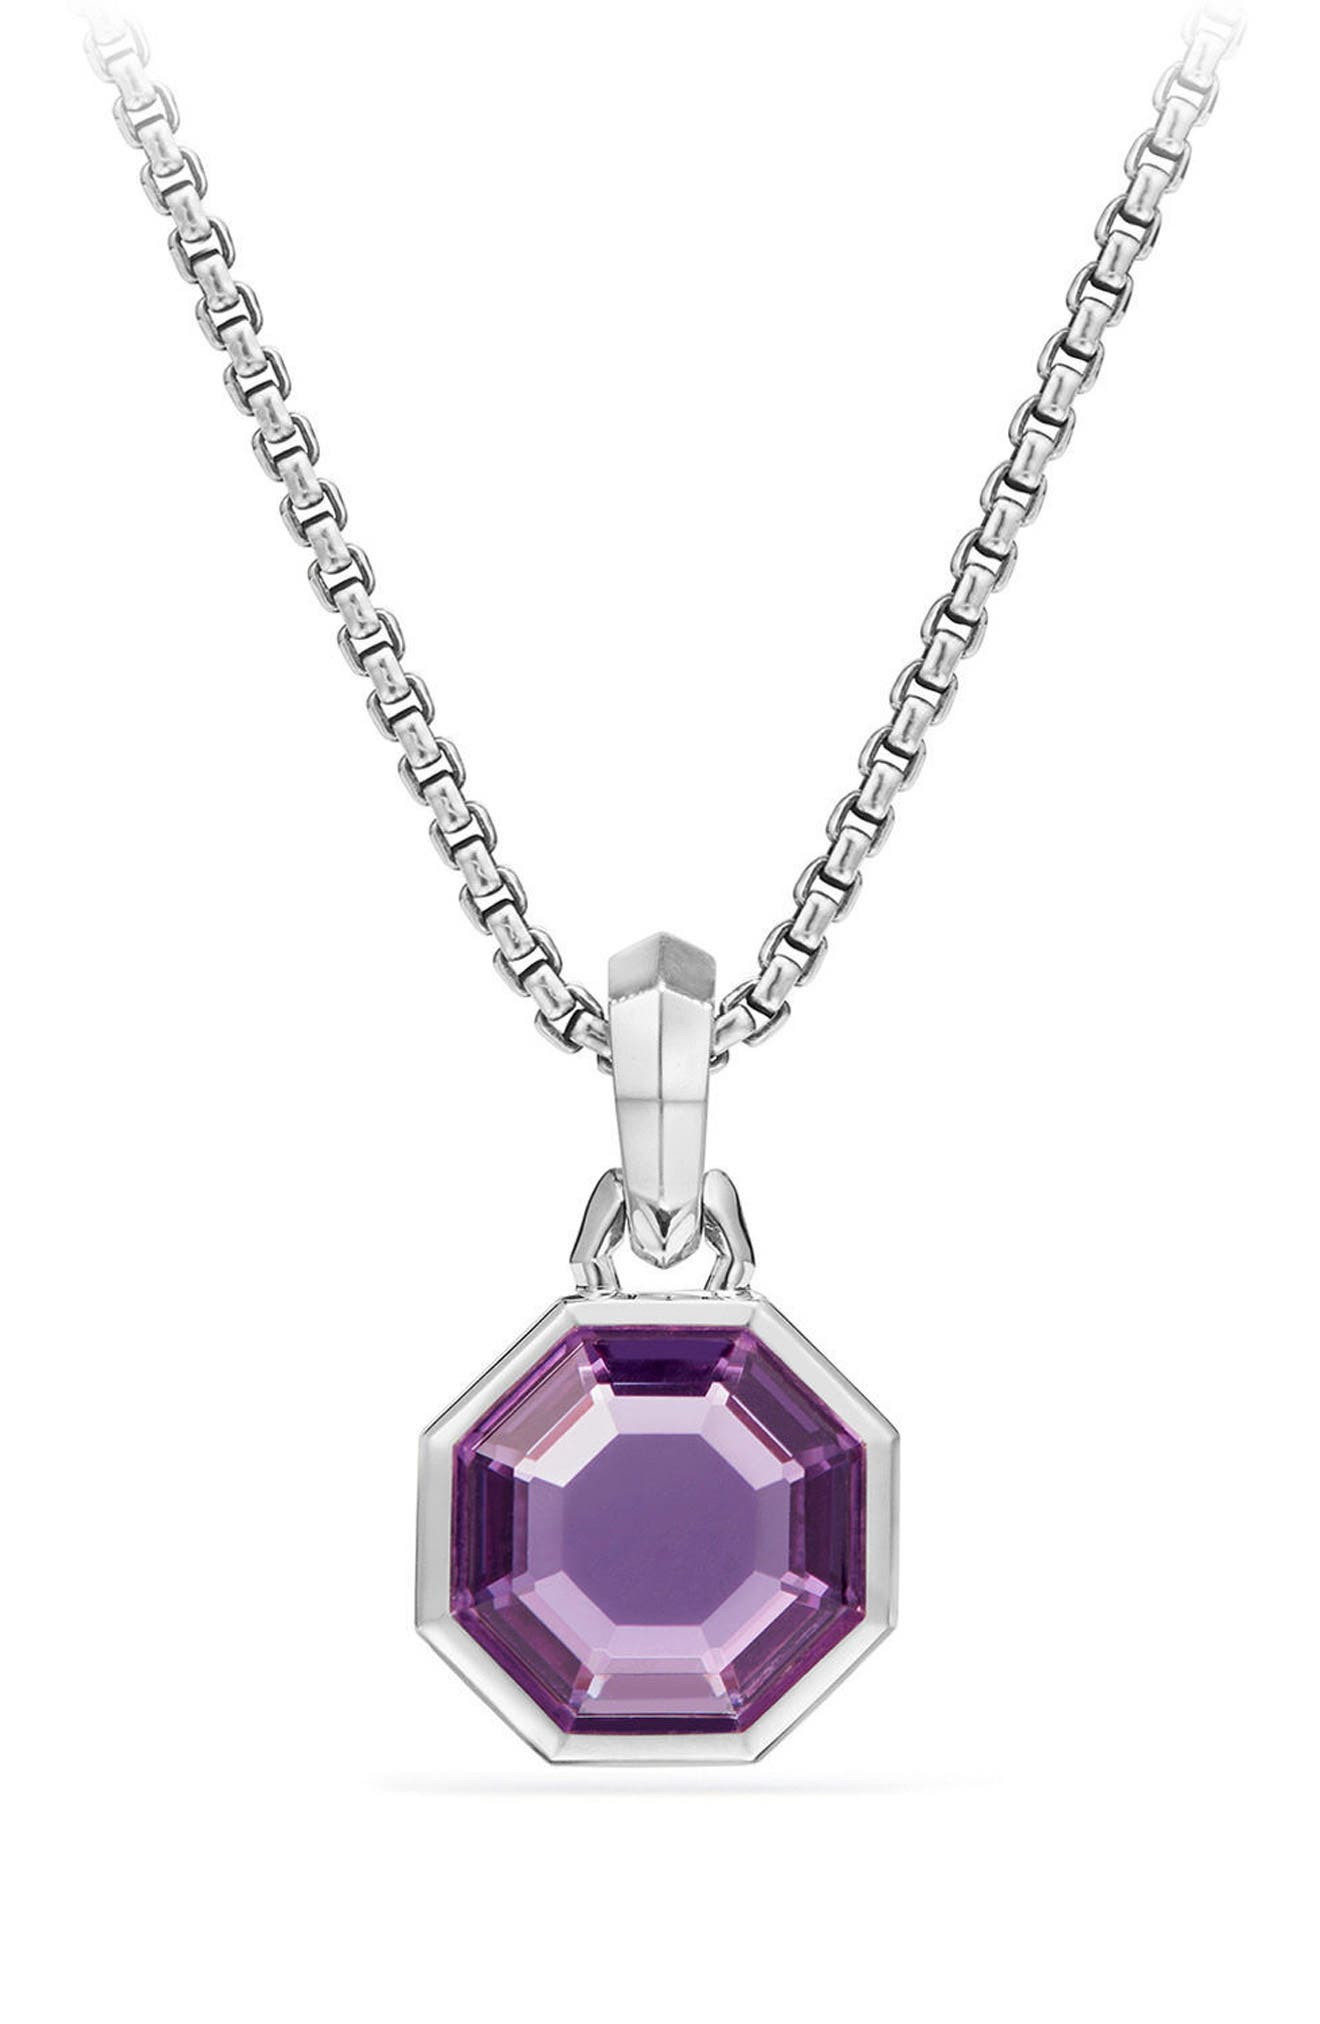 Cable Collectibles Octagon Cut Semiprecious Stone Amulet,                             Main thumbnail 1, color,                             AMETHYST